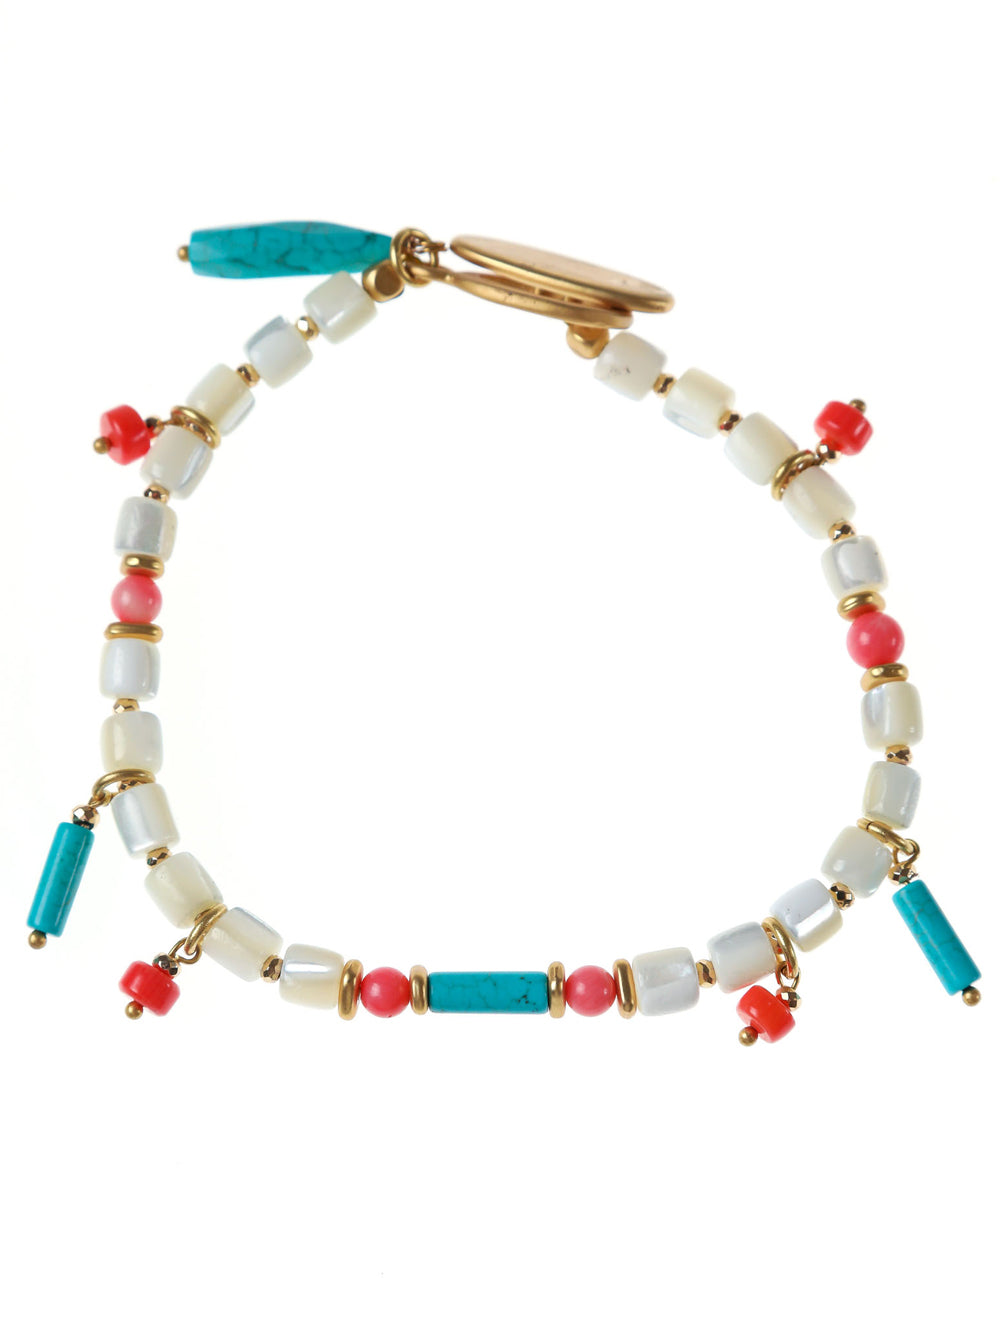 TAHITI MULTI SHELL ANKLET - Kaia London